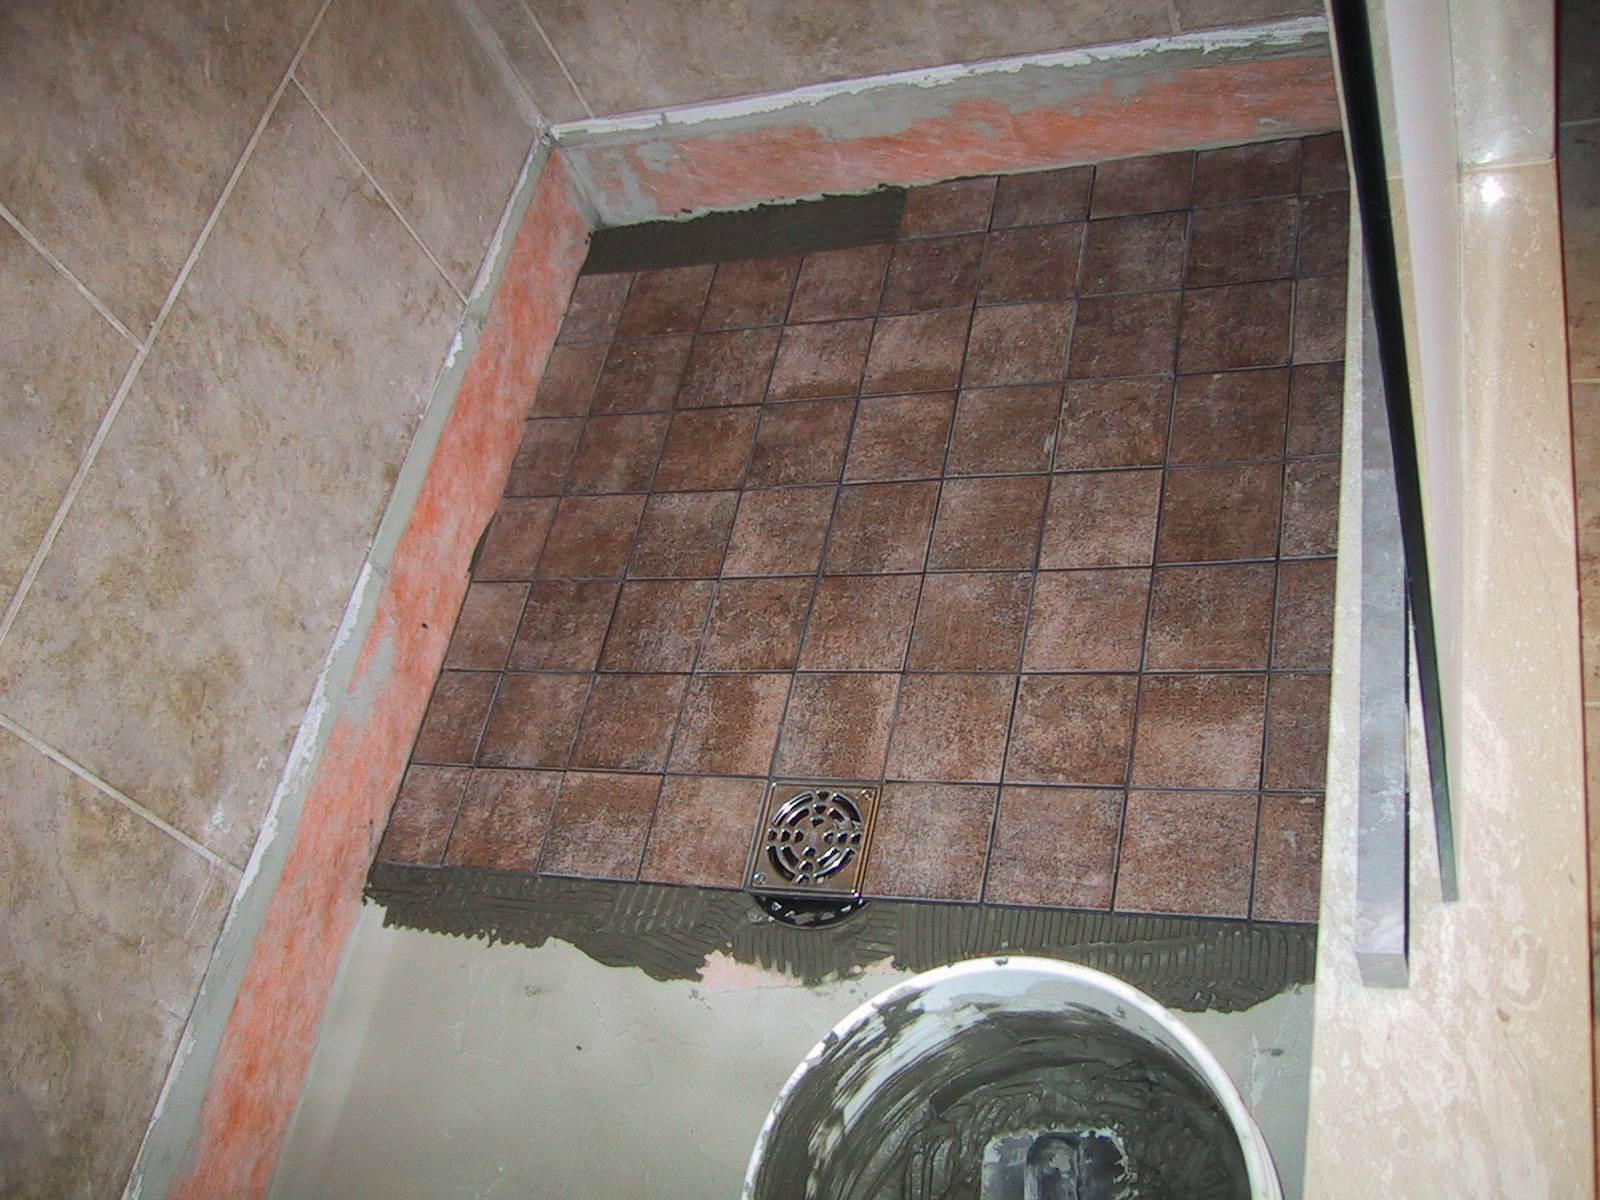 Tiling Shower Joke